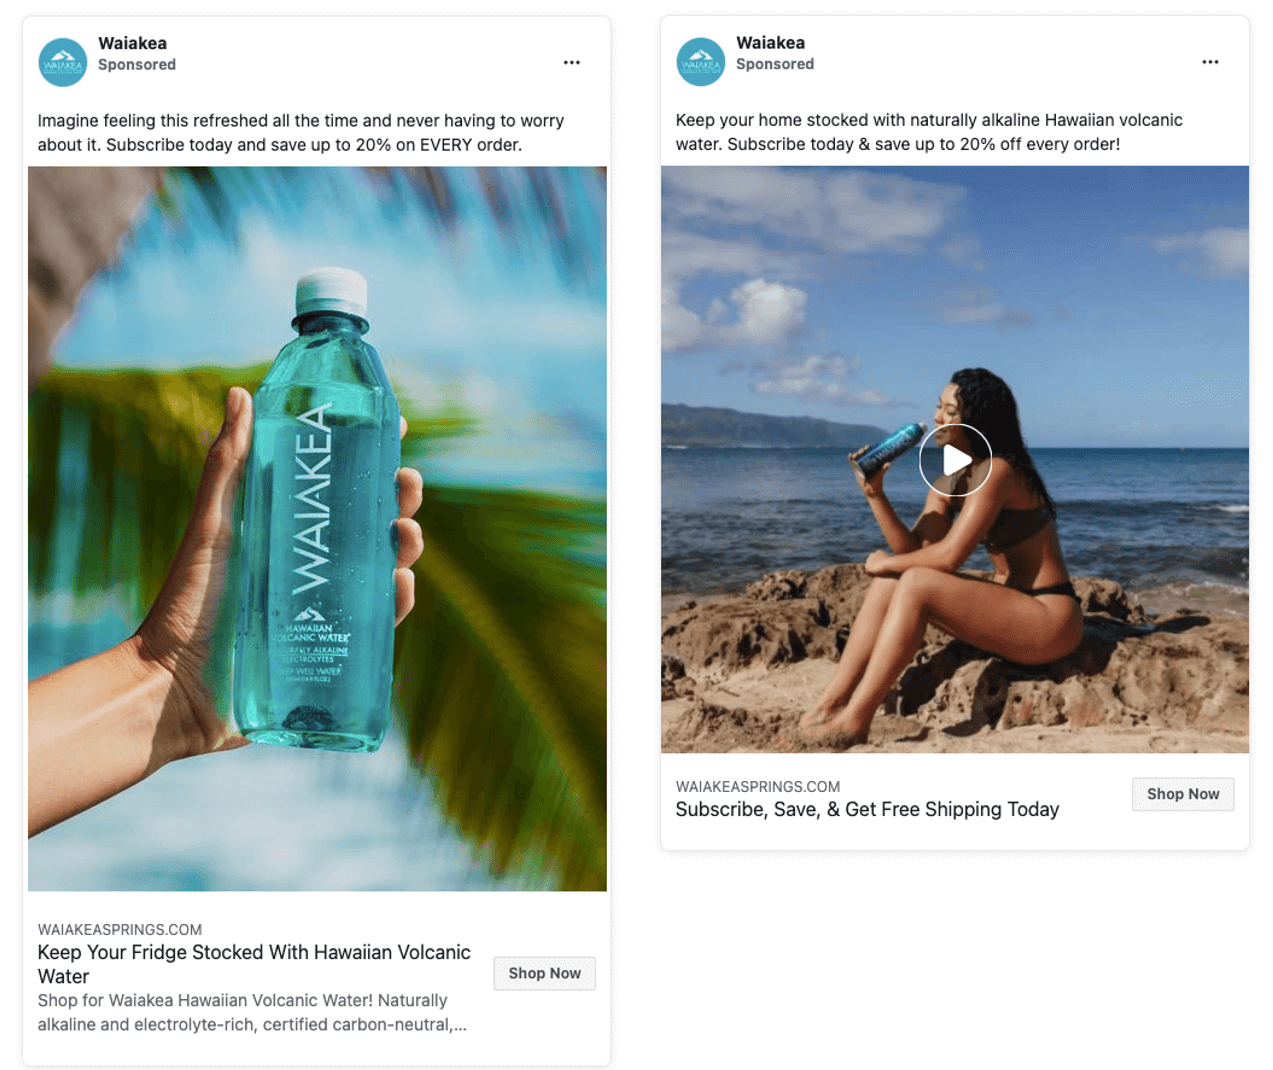 Waiakea grew brand awareness in a busy market with educational content